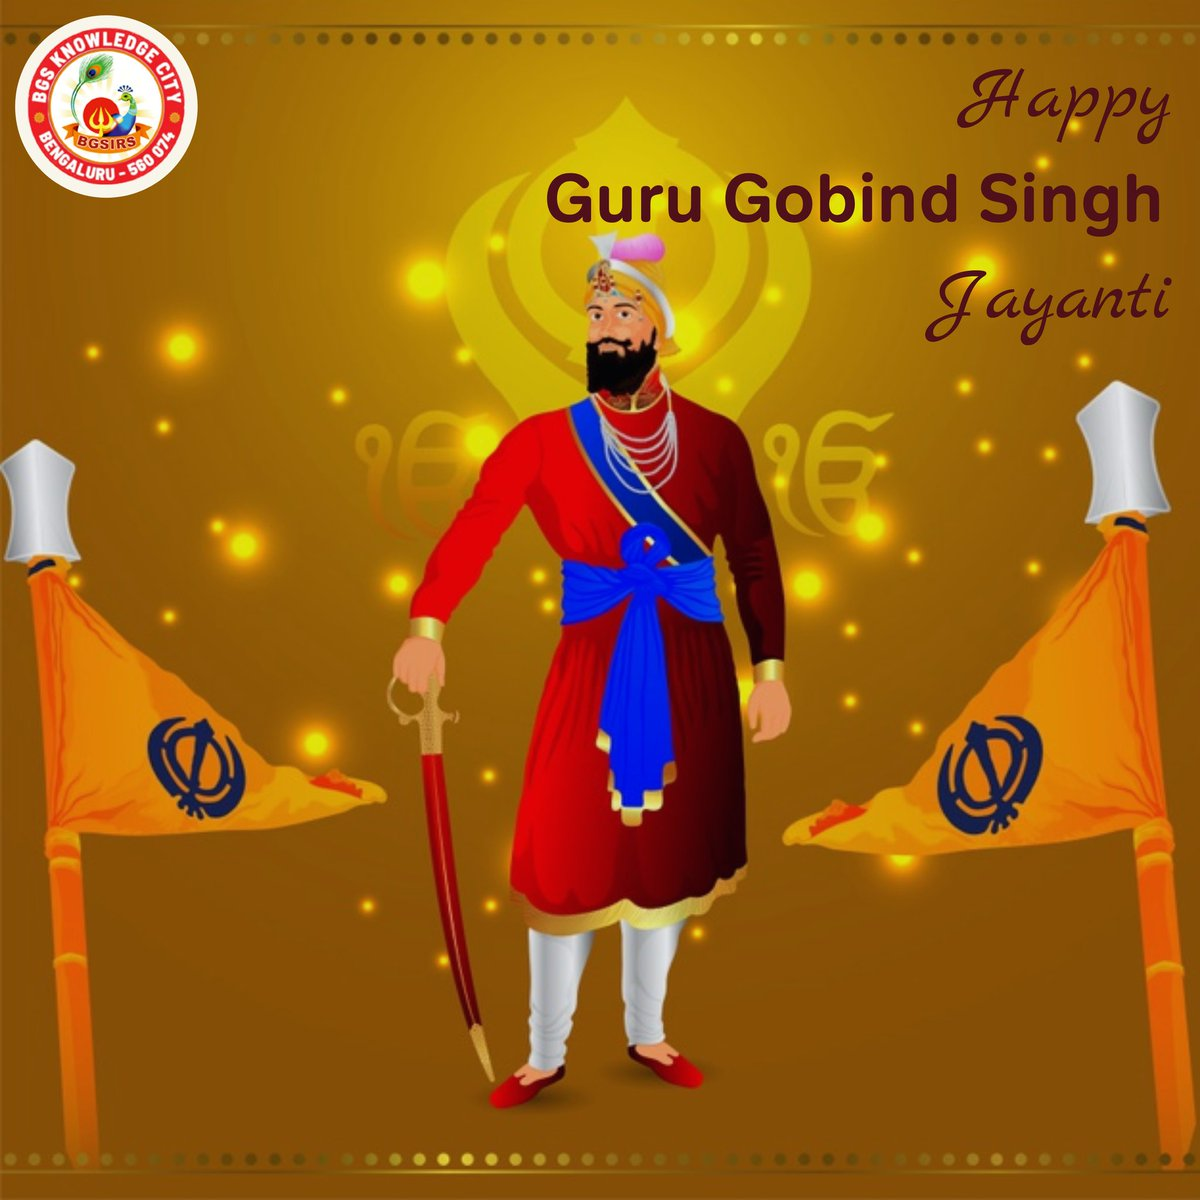 May his teachings enlighten us all, and fill our hearts with kindness and compassion. 💮  #BGSIRS wishes everyone a very happy Guru Gobind Singh Jayanti 🙏🏼  #GuruGobindSinghJi #Sikh #GuruPurab #GuruGobindSinghJayanti #Waheguru #GuruGobindSingh #SikhGuru